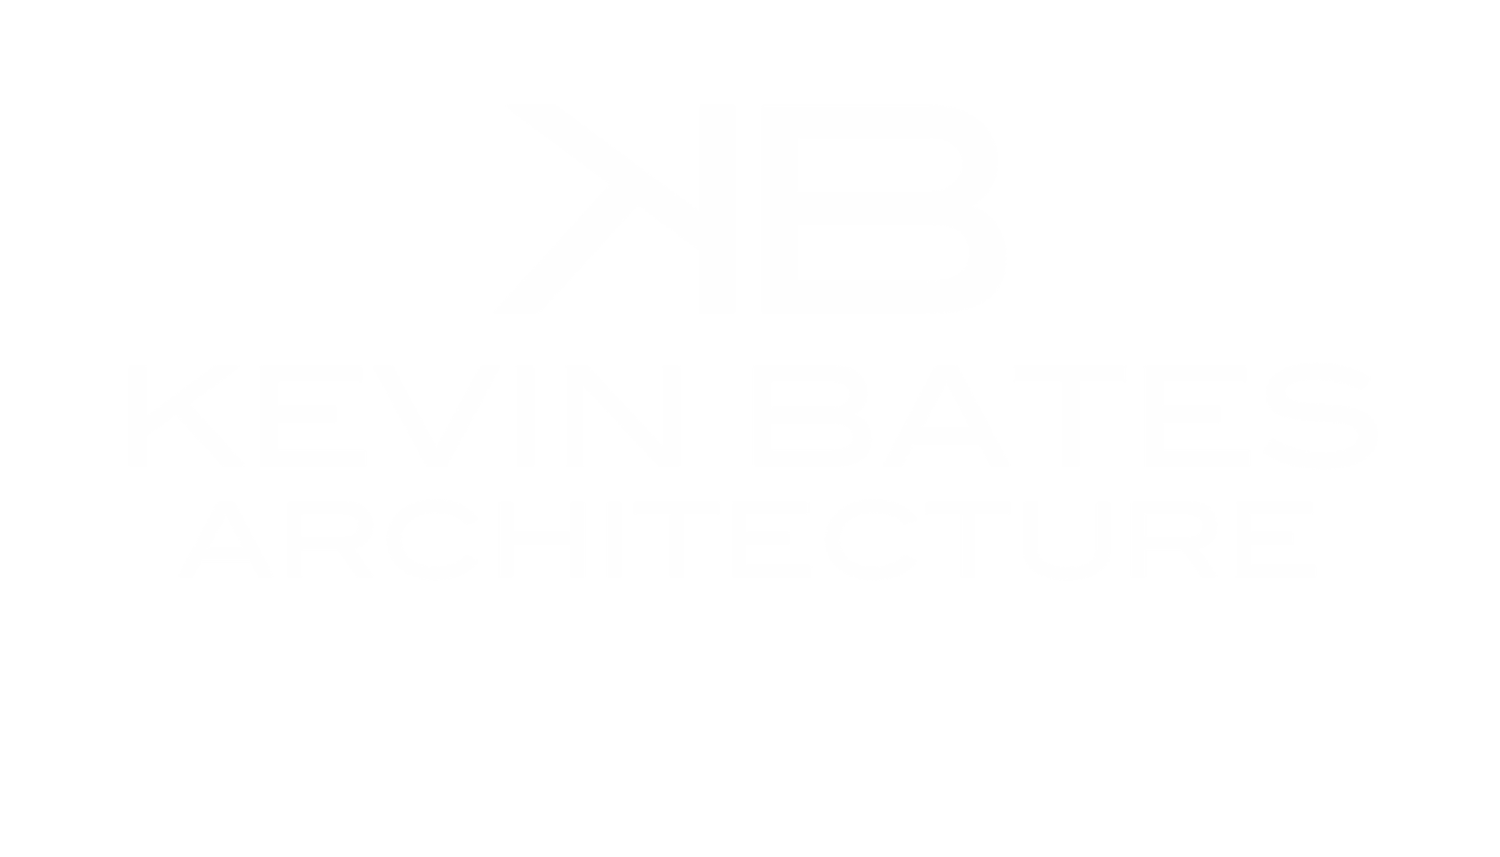 Kevin Bates Architecture